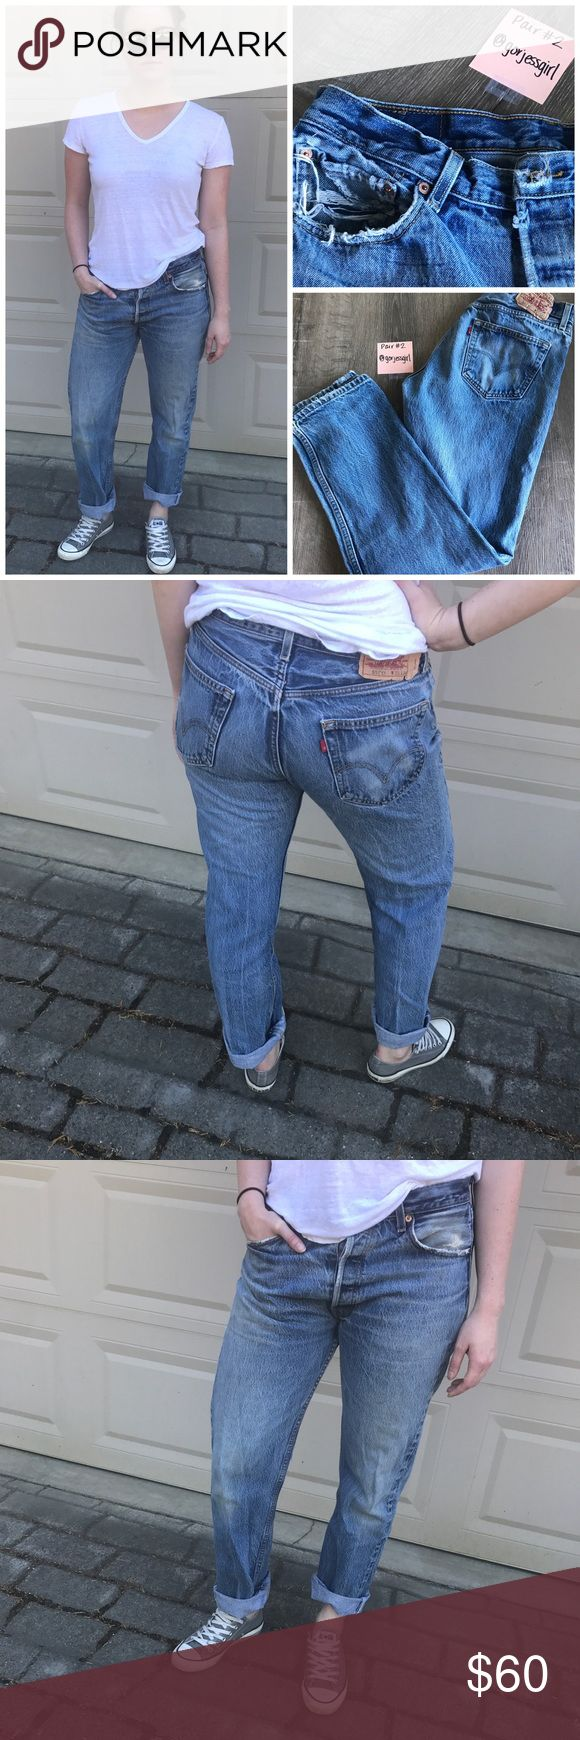 Levi's 501s distressed boyfriend mom jeans The perfect pair of boyfriend jeans. Levi 501 5 buttonfly Straight leg, high waisted Authentic distressing Men's size 35 x 34- actual measurements: waist 16 inches. Inseam 30.5 inches. Rise 11 in. Leg opening 7 in These are approx 10 years old and beautifully distressed.   Several pairs available each unique in distressing, this pair #2. Vintage look without the price! Wear on pockets and knees. Top button hole has wear. Wear at knees. Some small…